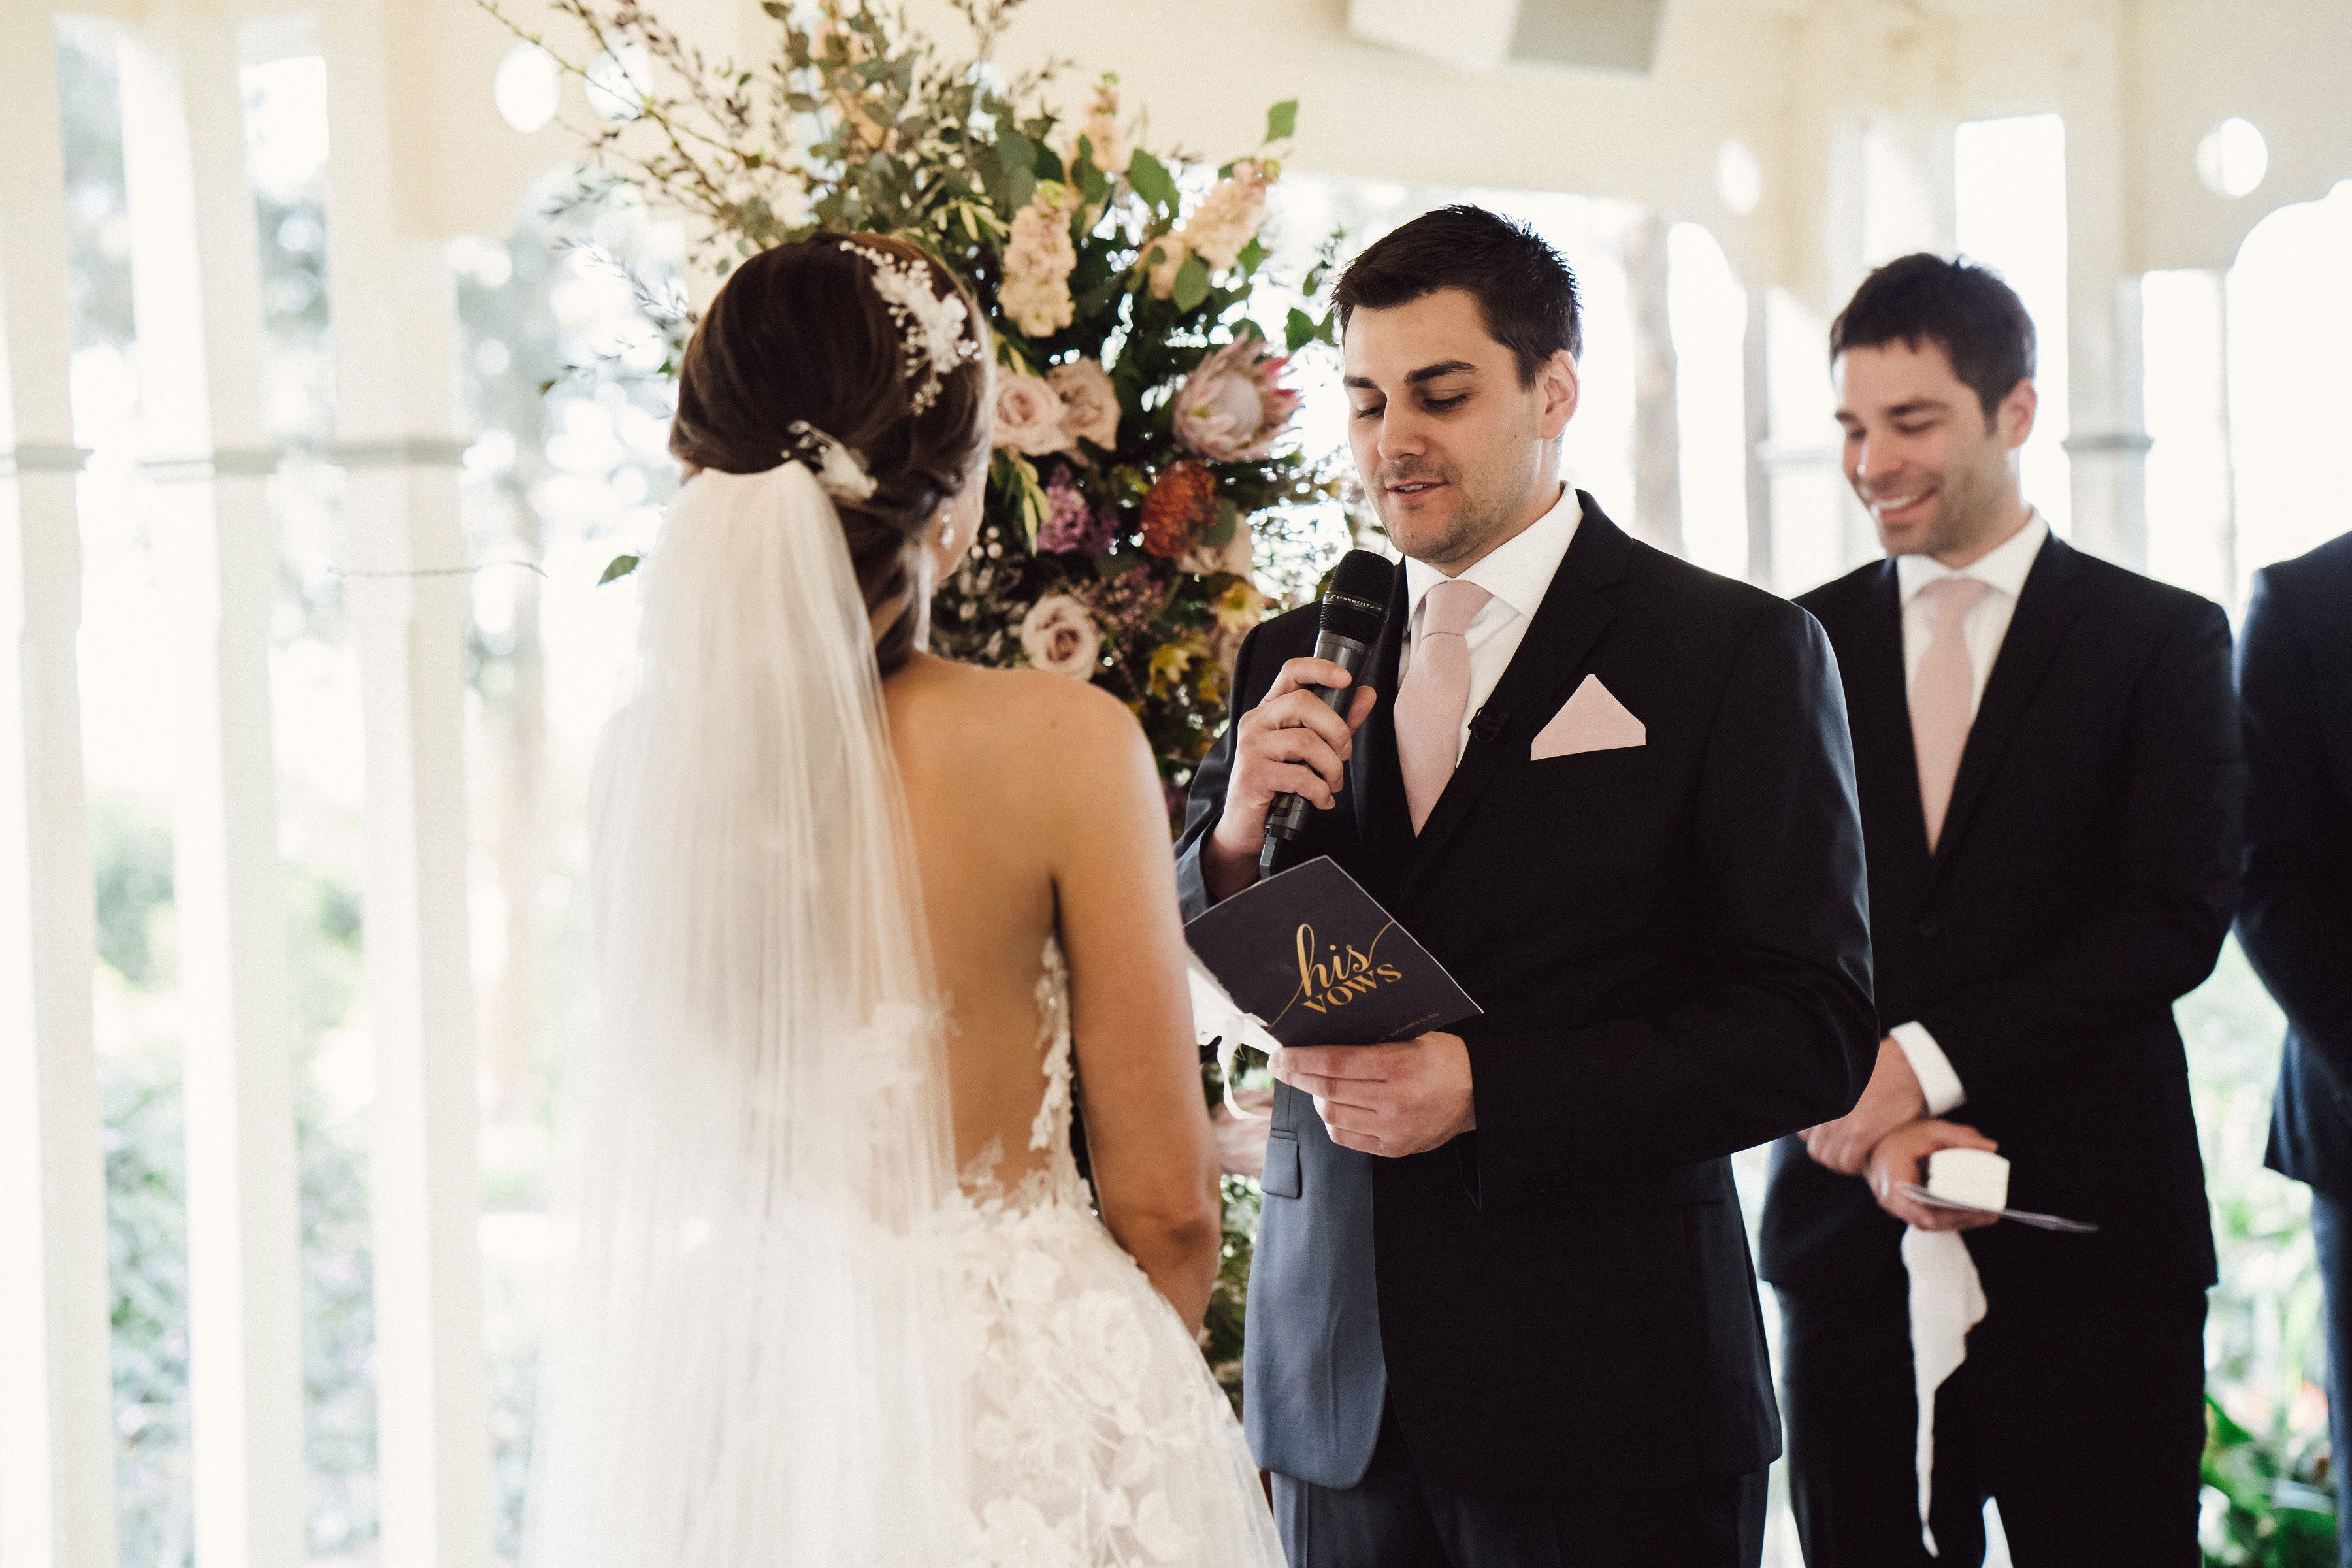 Groom reading vows to wife